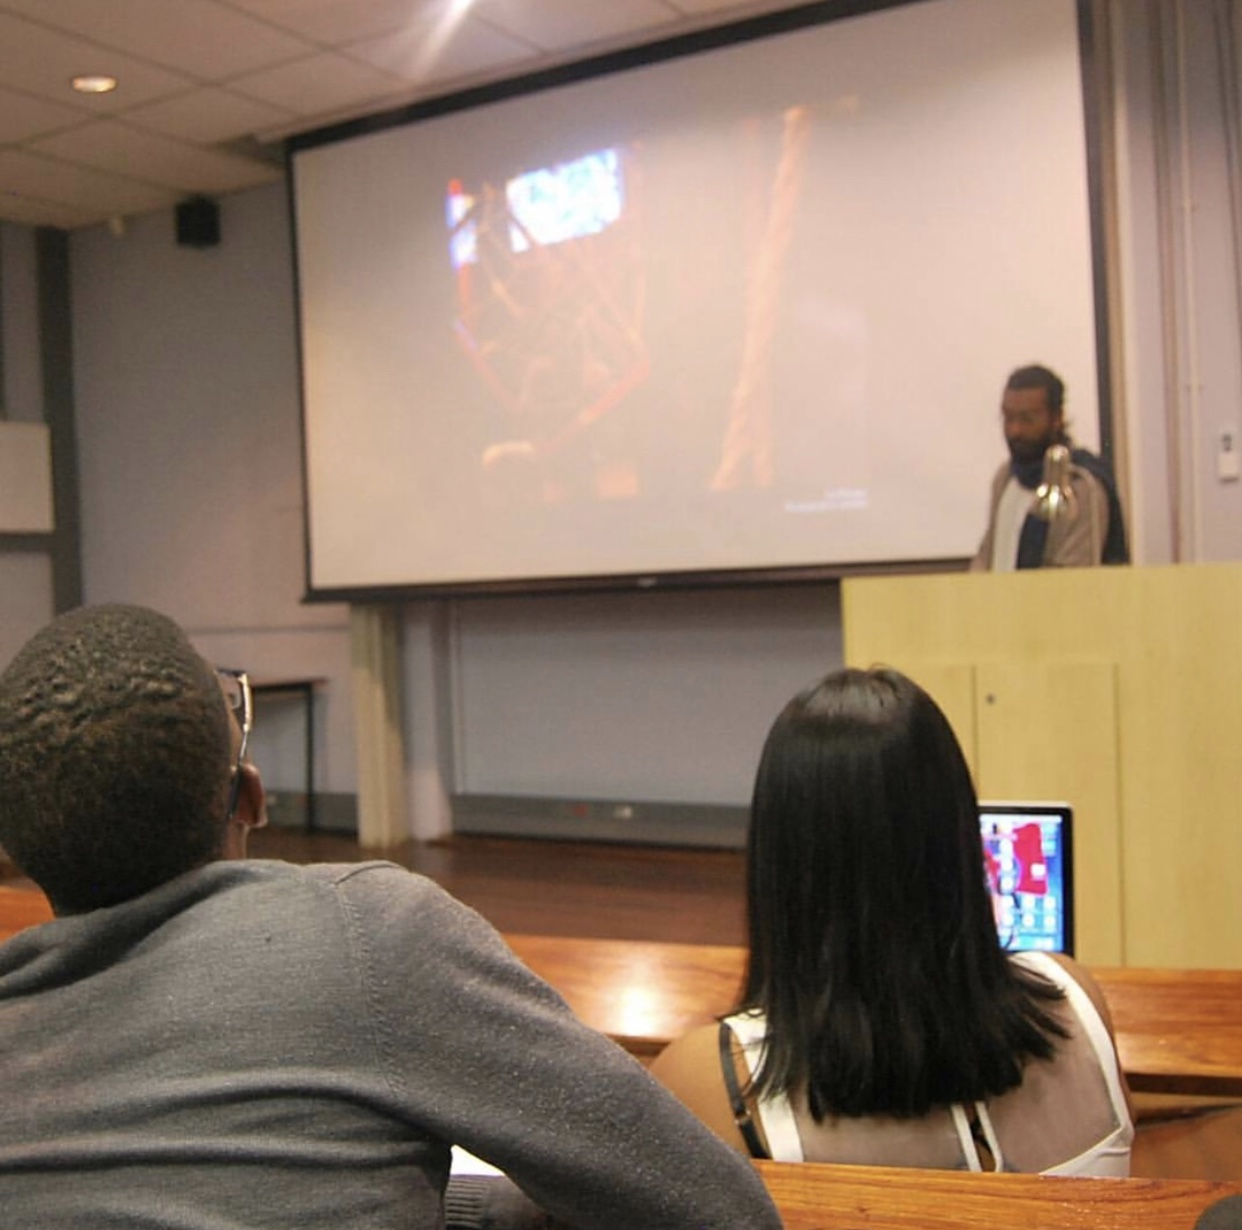 Artist talk at Wits School of Arts, Johannesburg, South Africa (October, 2017)